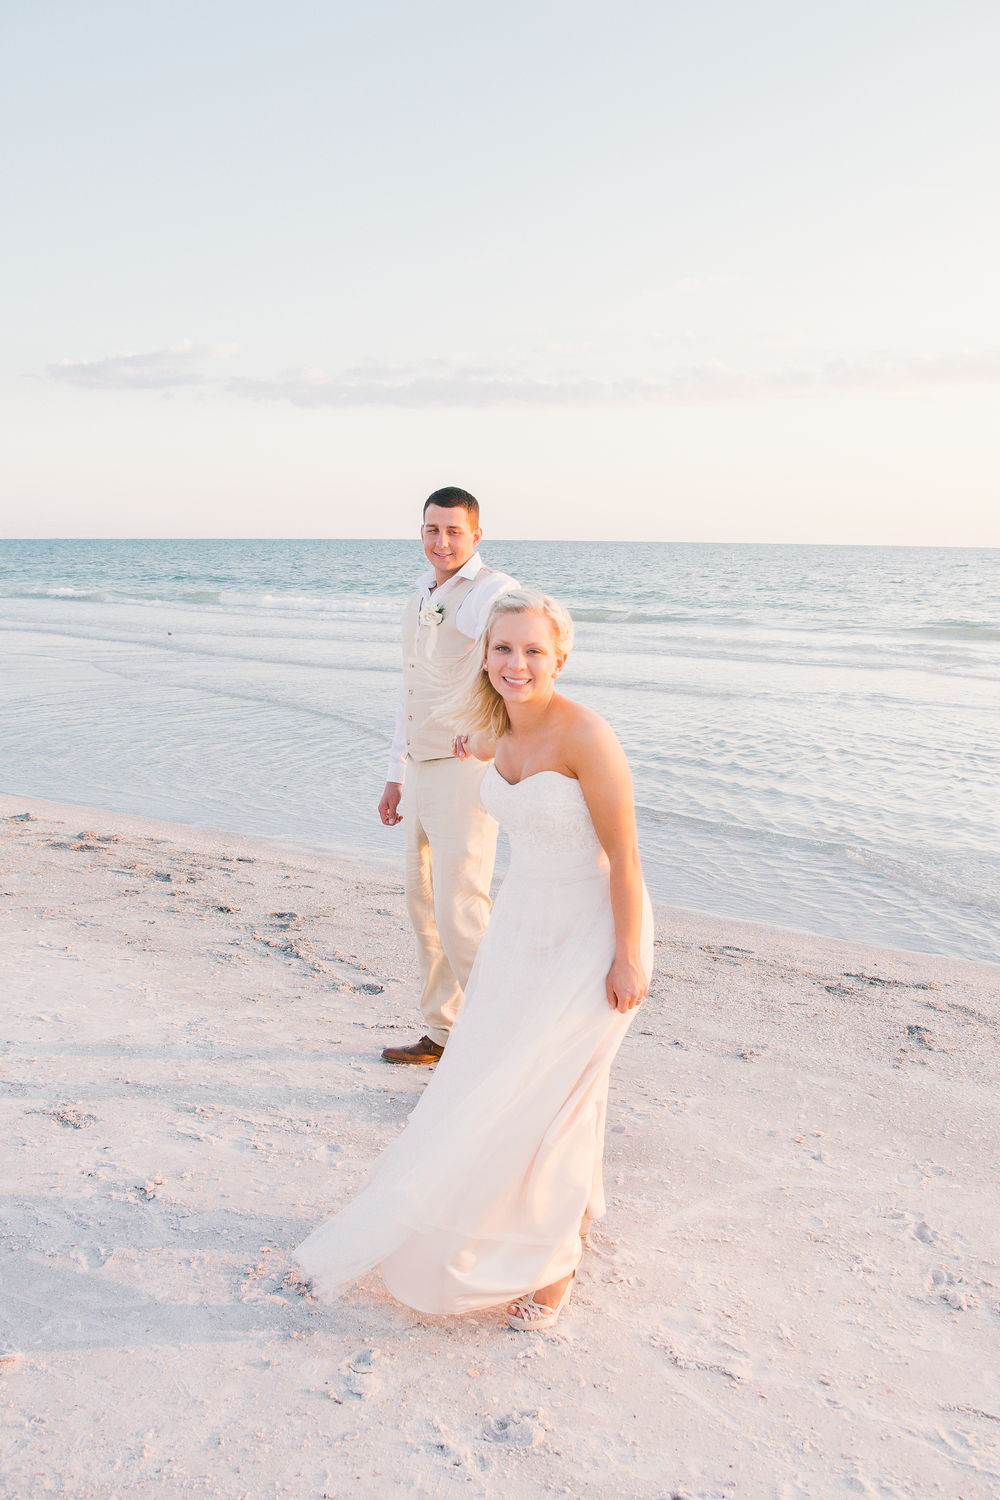 PostCard Inn Beach wedding, St.Pete wedding, St.Pete wedding Photographer